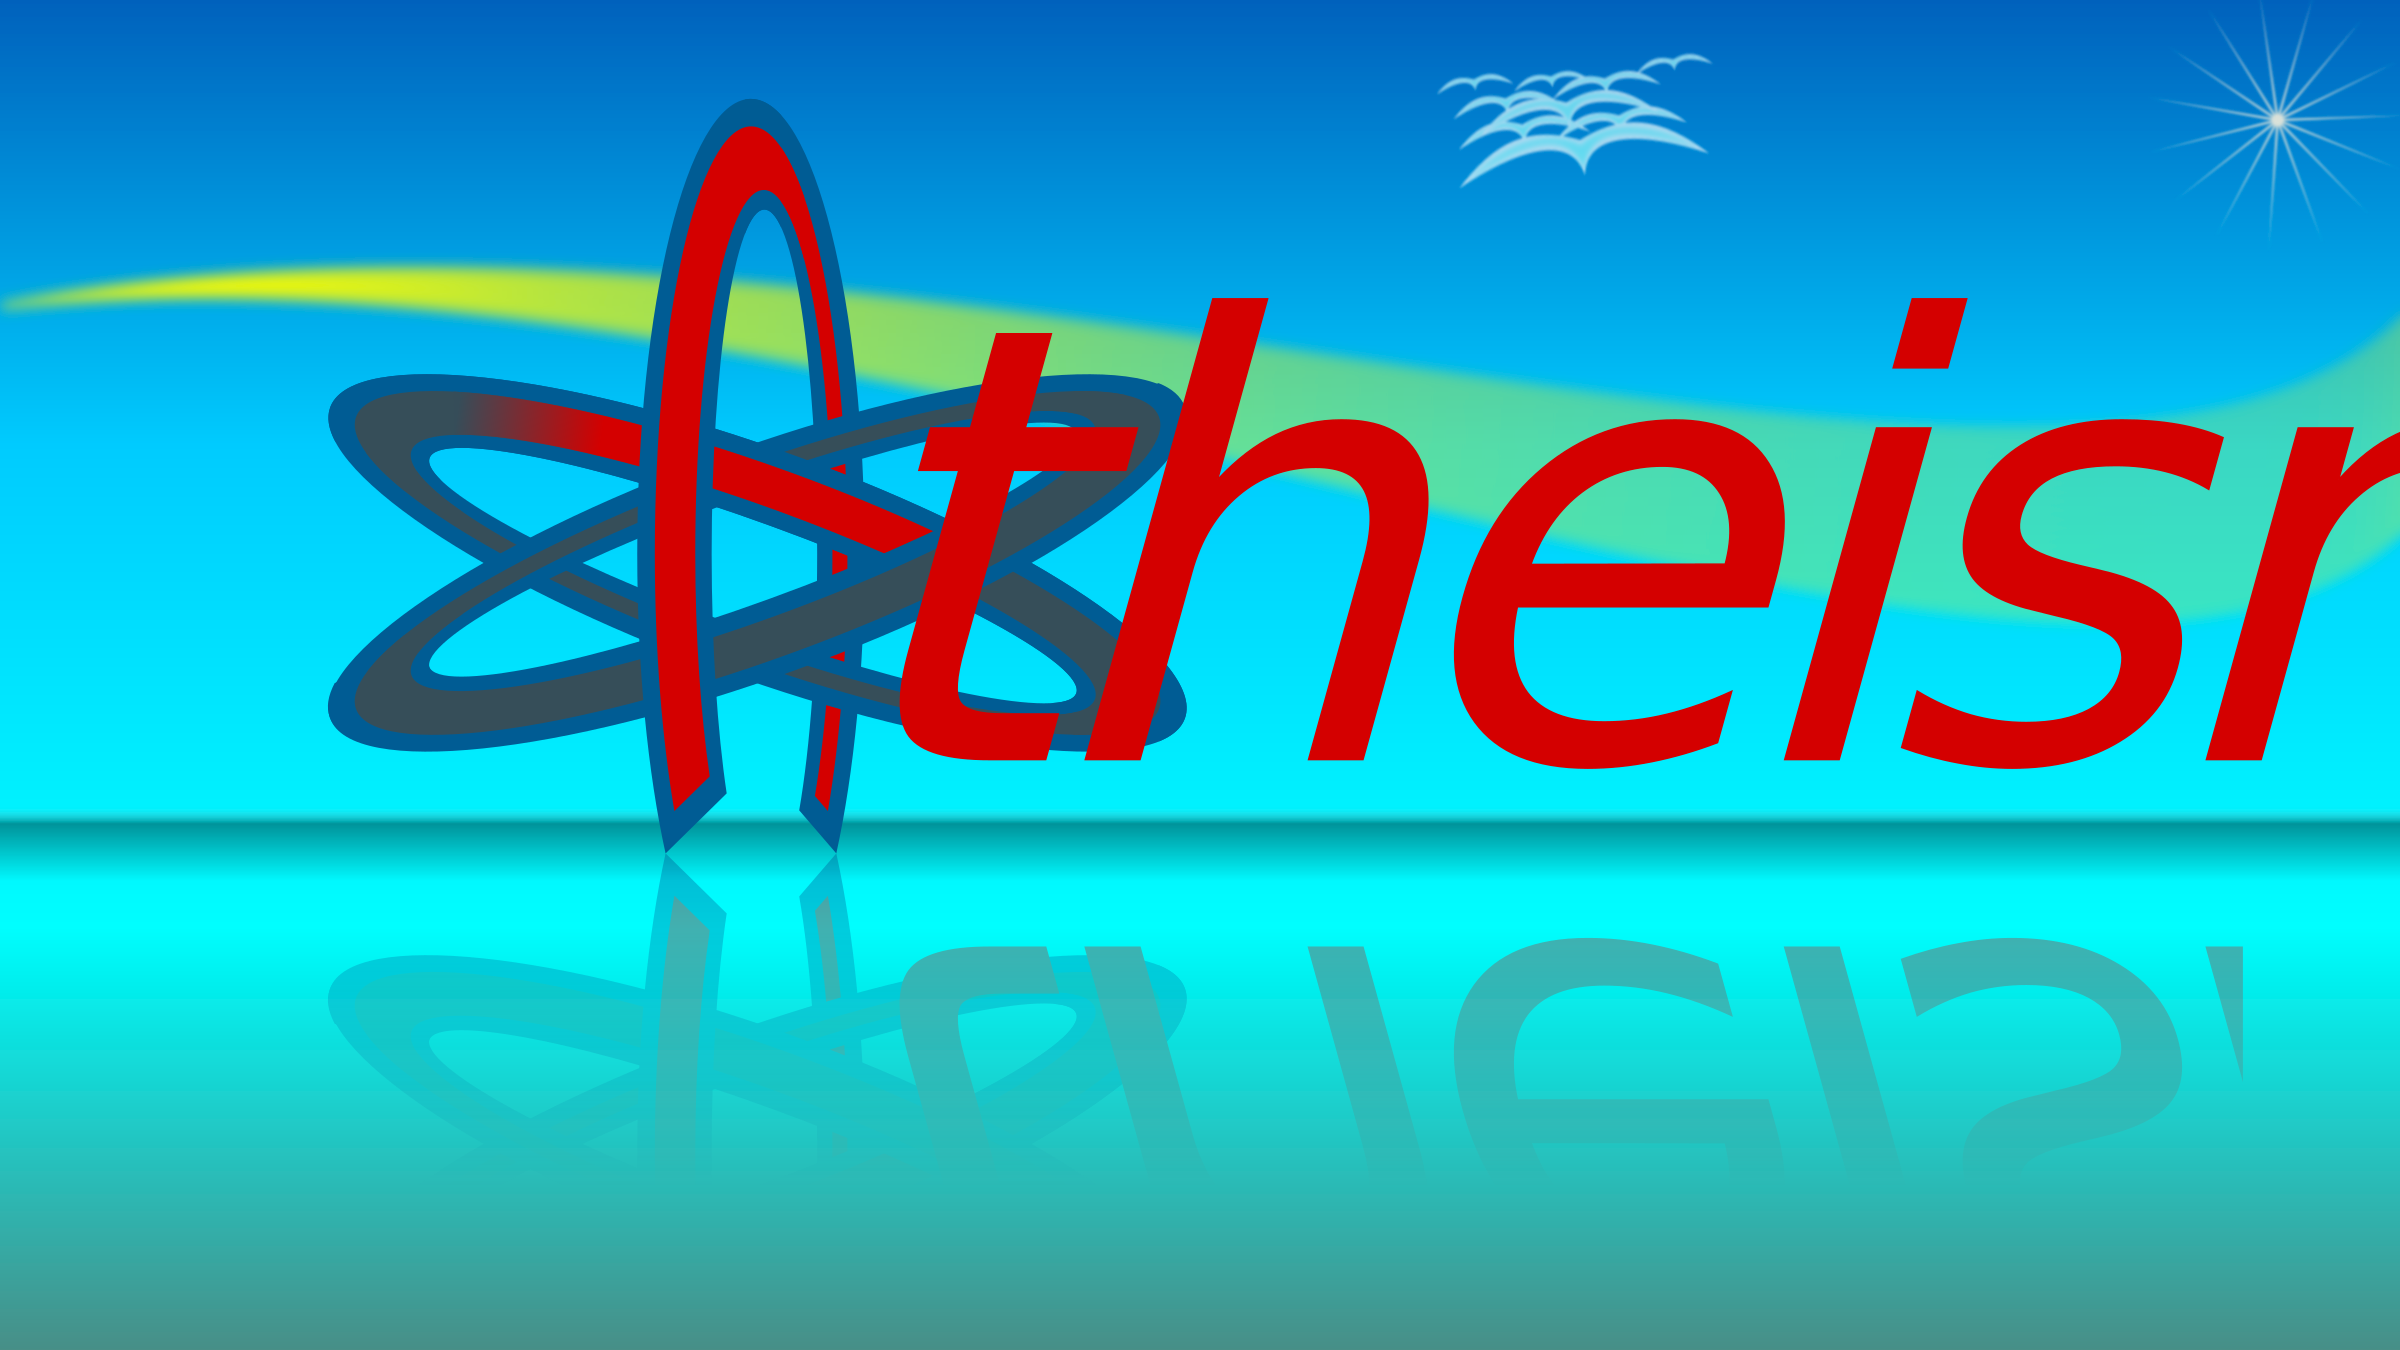 Atom Of Atheism Wallpaper 9by16 by kg